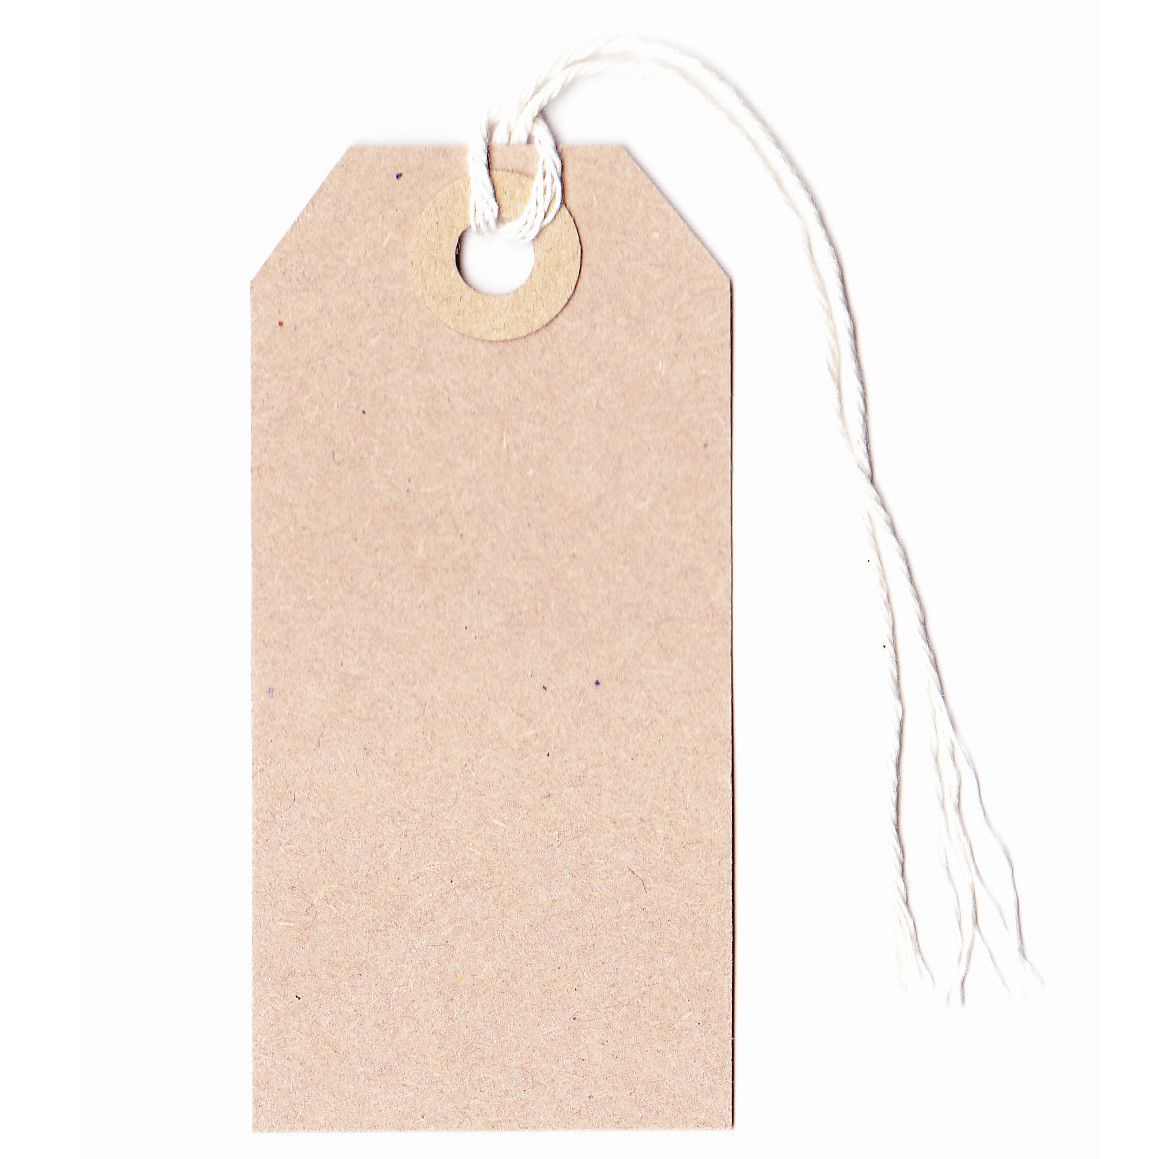 Tag: Manilla Strung Luggage Style Tags 82x41mm